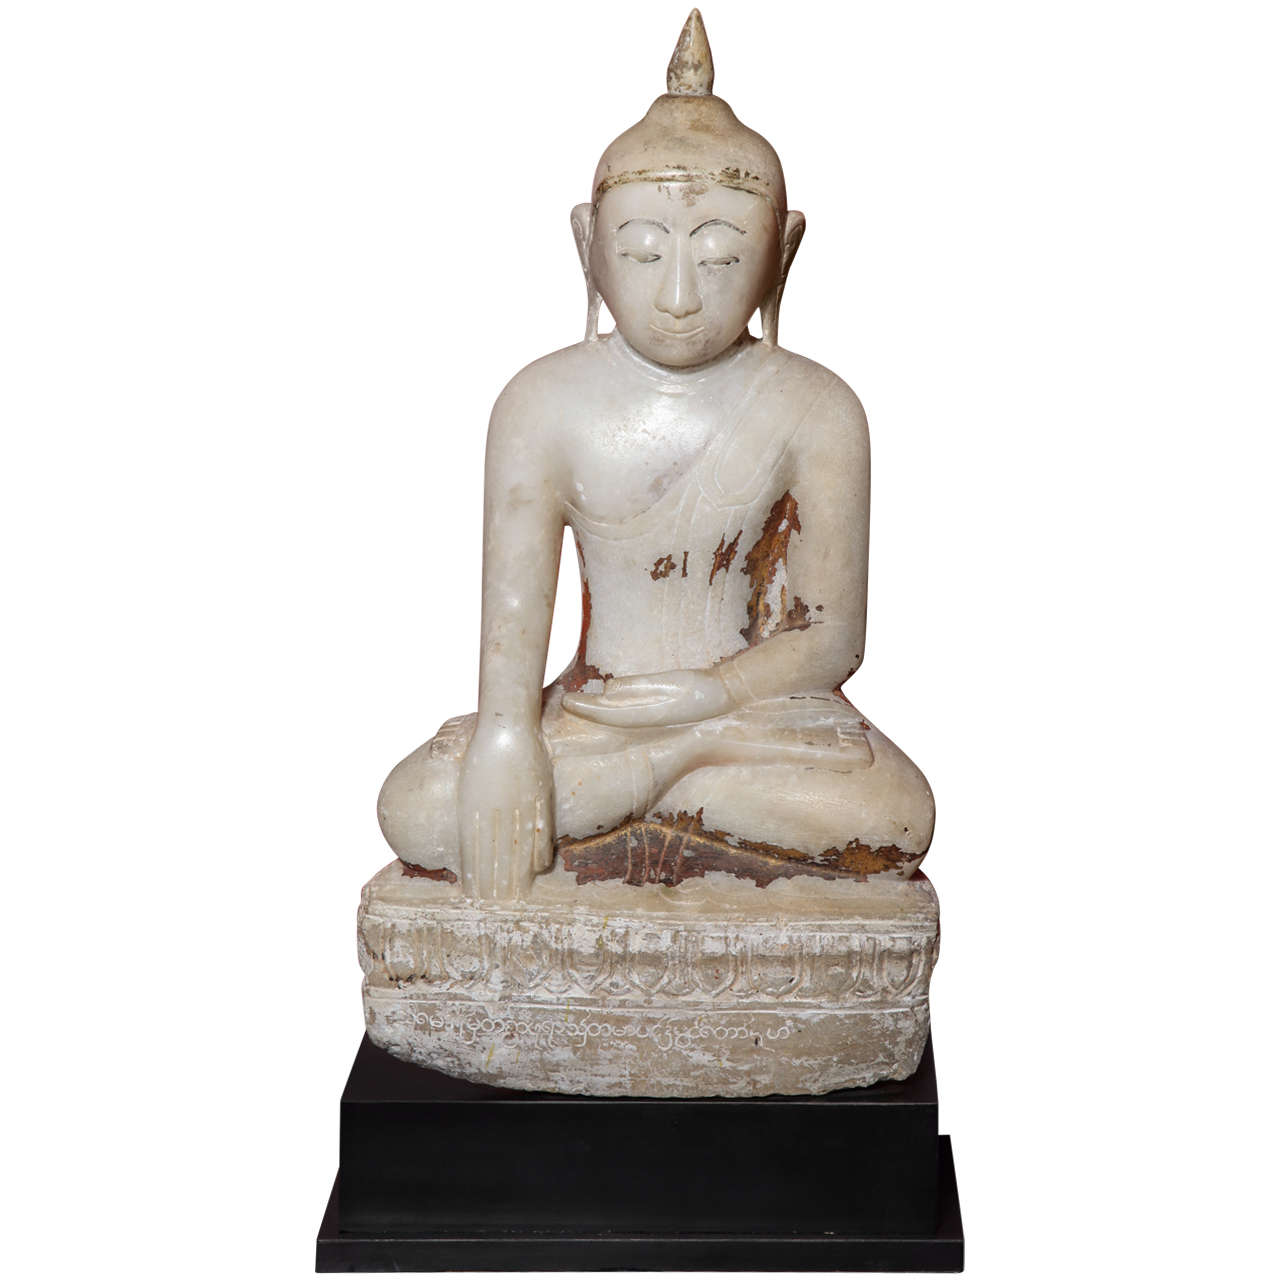 17th or 18th Century Burmese Shan Style Alabaster Sculpture of a Seated Buddha